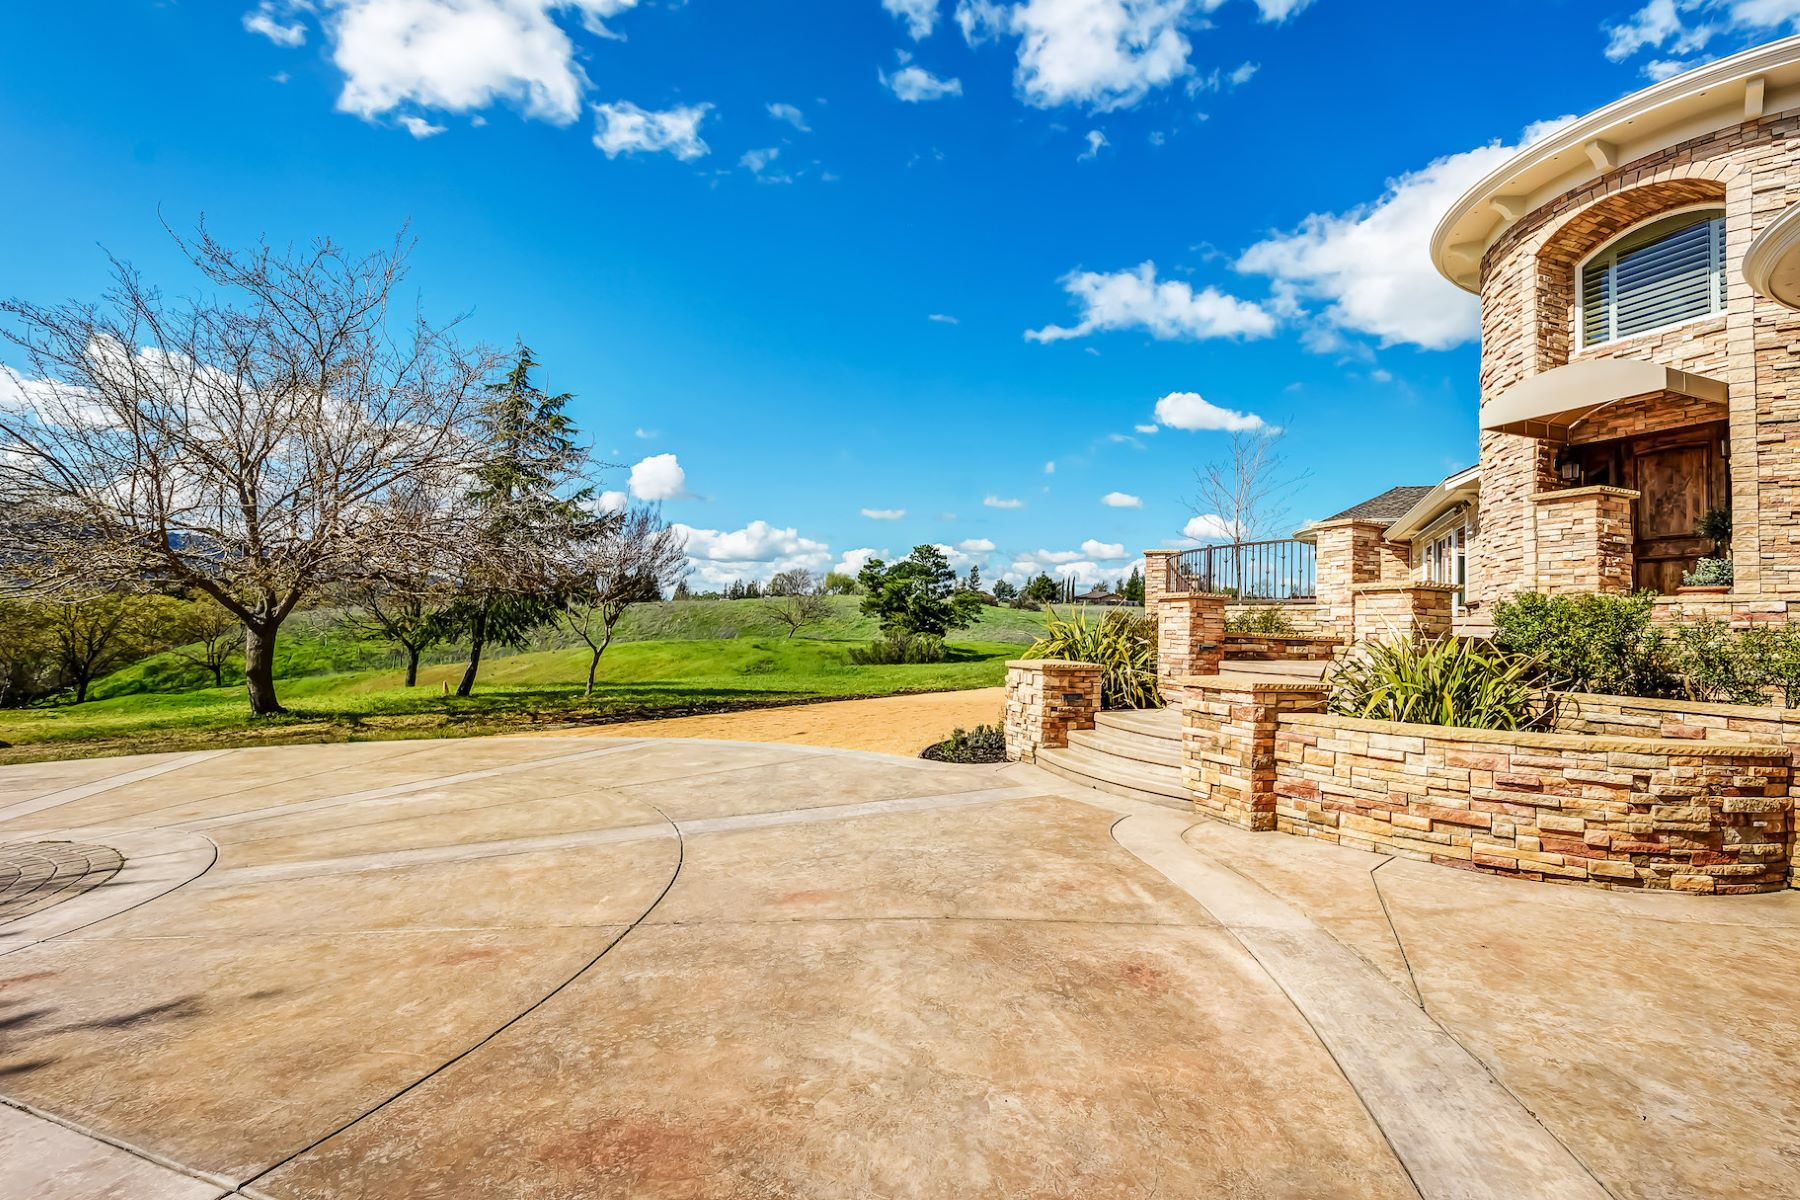 Additional photo for property listing at 920 Happy Valley Rd, Pleasanton 920 Happy Valley Rd Pleasanton, California 94566 United States